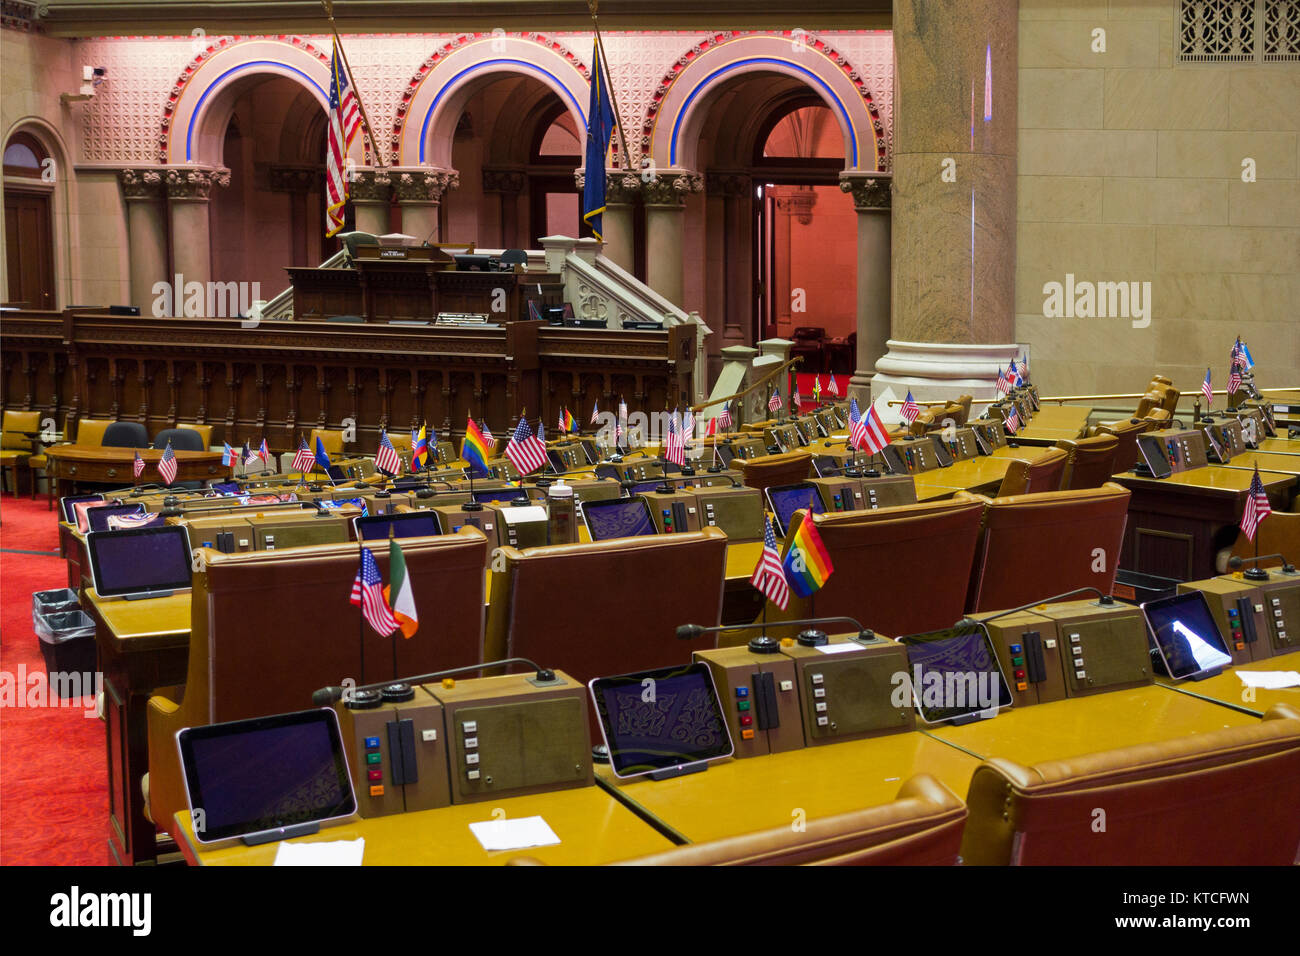 The Entire State is New York and Albany is its Capital ...  State Street Albany Interior